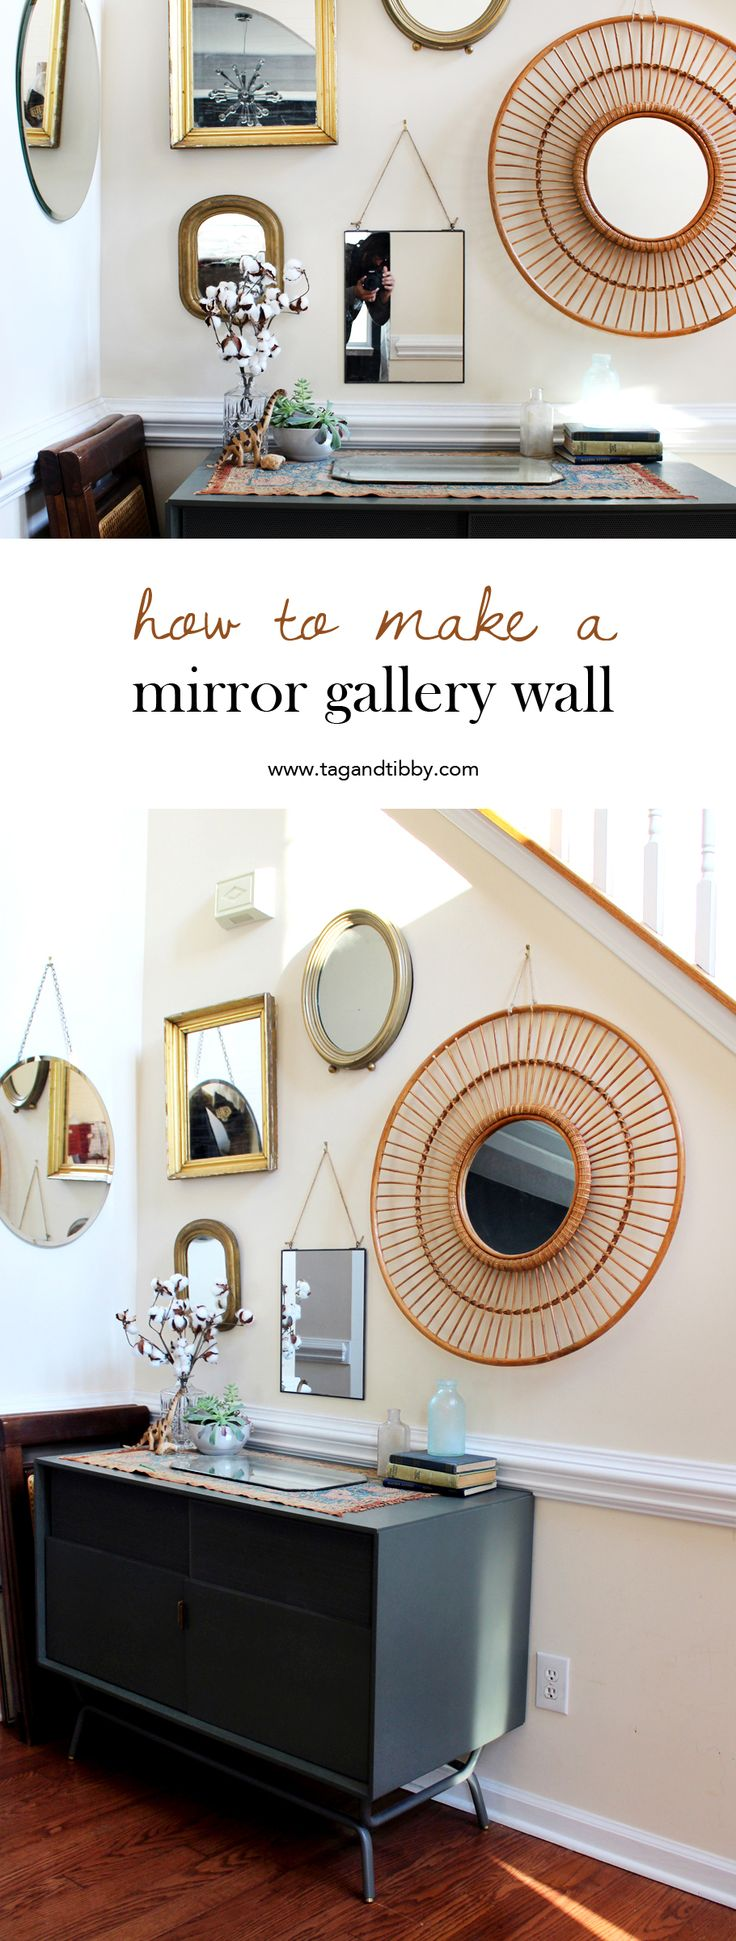 Home Decorating Diy Projects 5 Tips For Designing Your Own Mirror Gallery Wall Tag Tibby